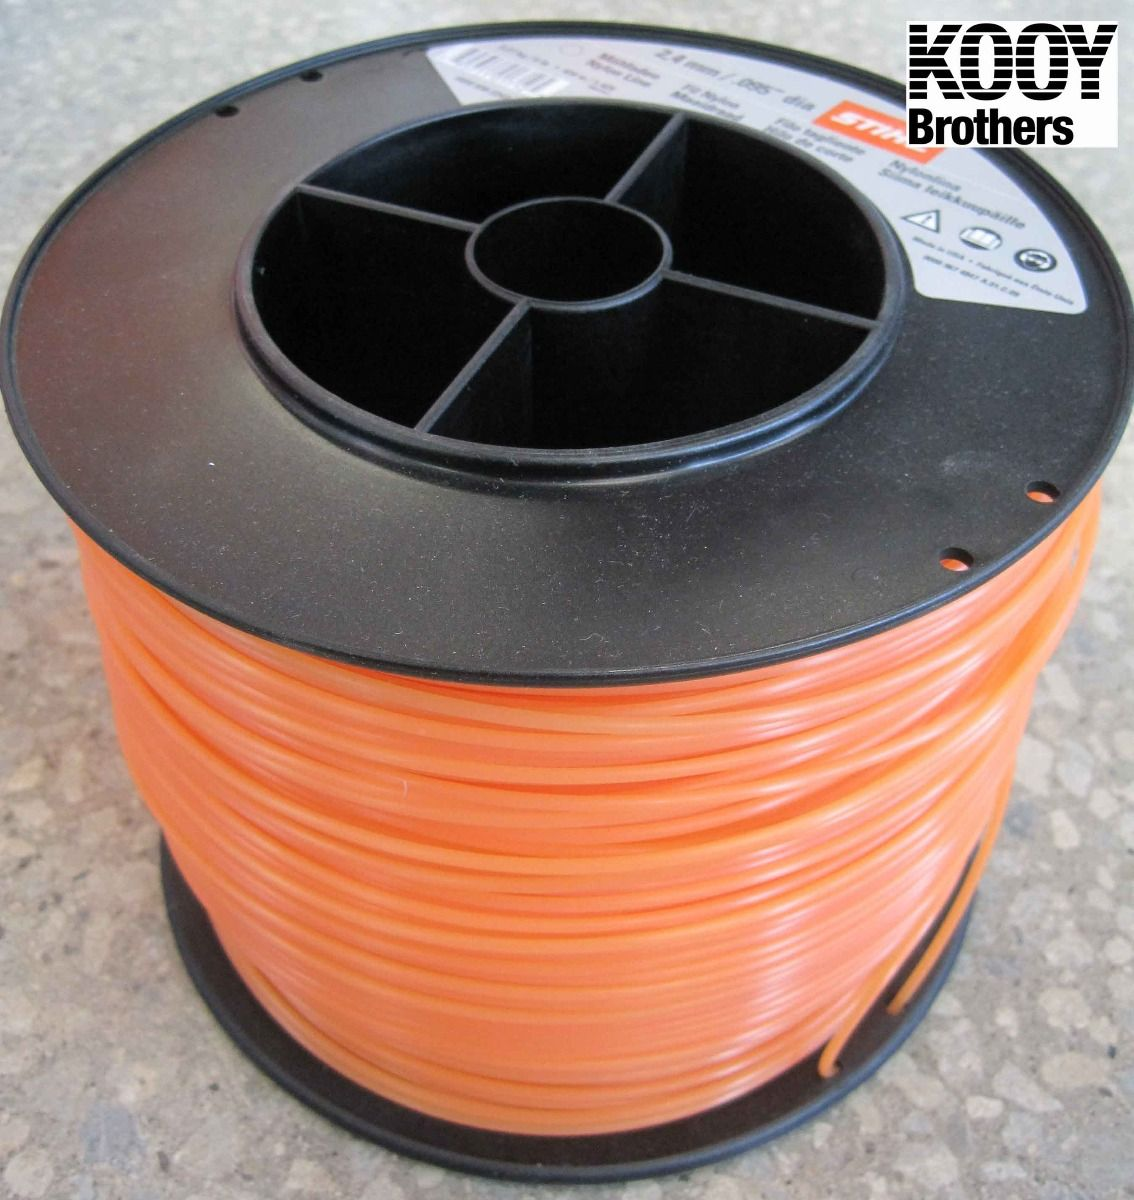 5lb roll of STIHL trimmer line